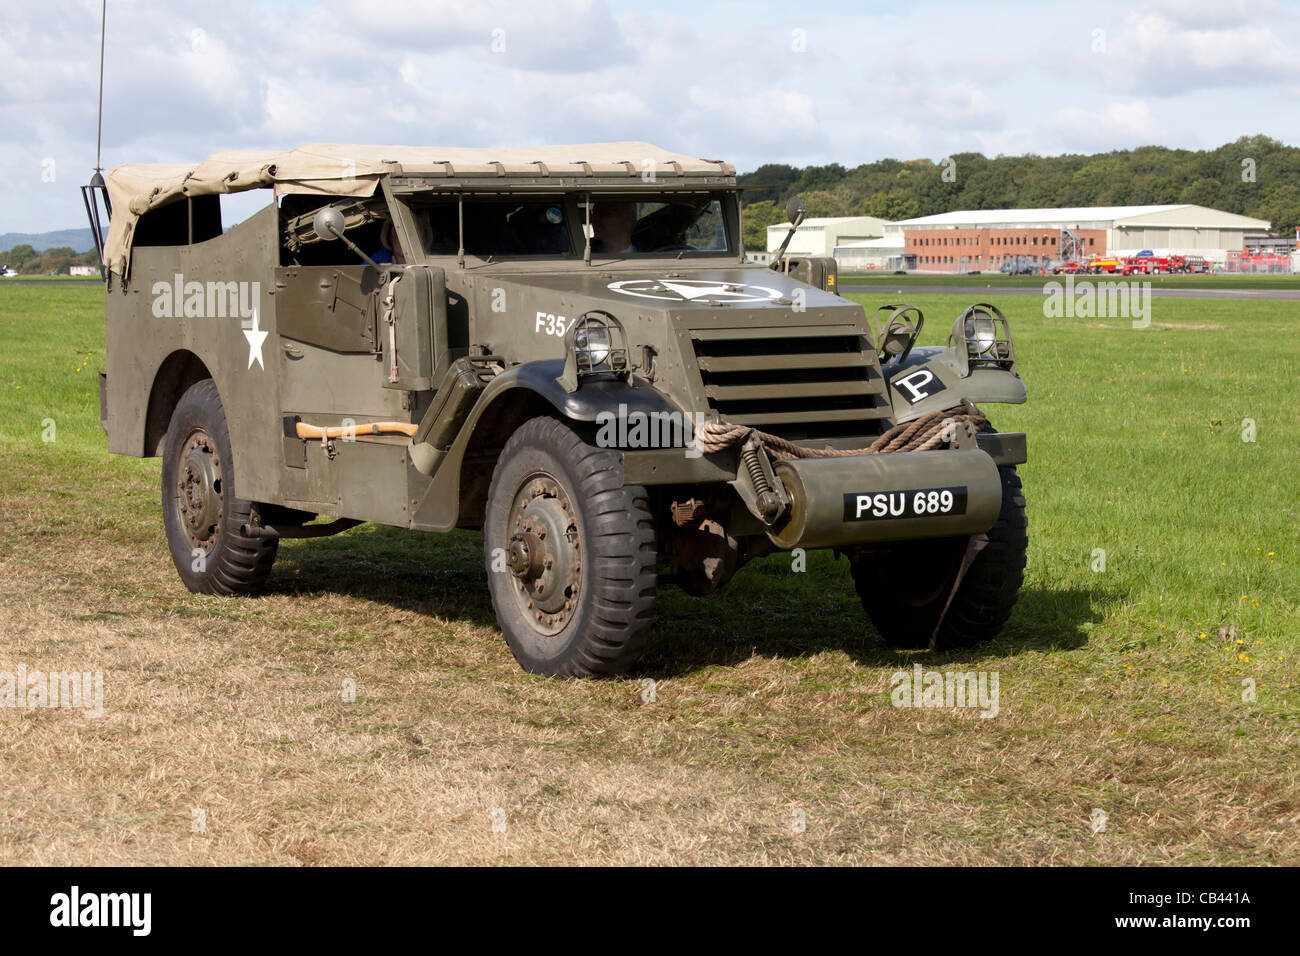 White M3A1 Scout car in the Military parade at Dunsfold Wings and Wheels 2011 - Stock Image